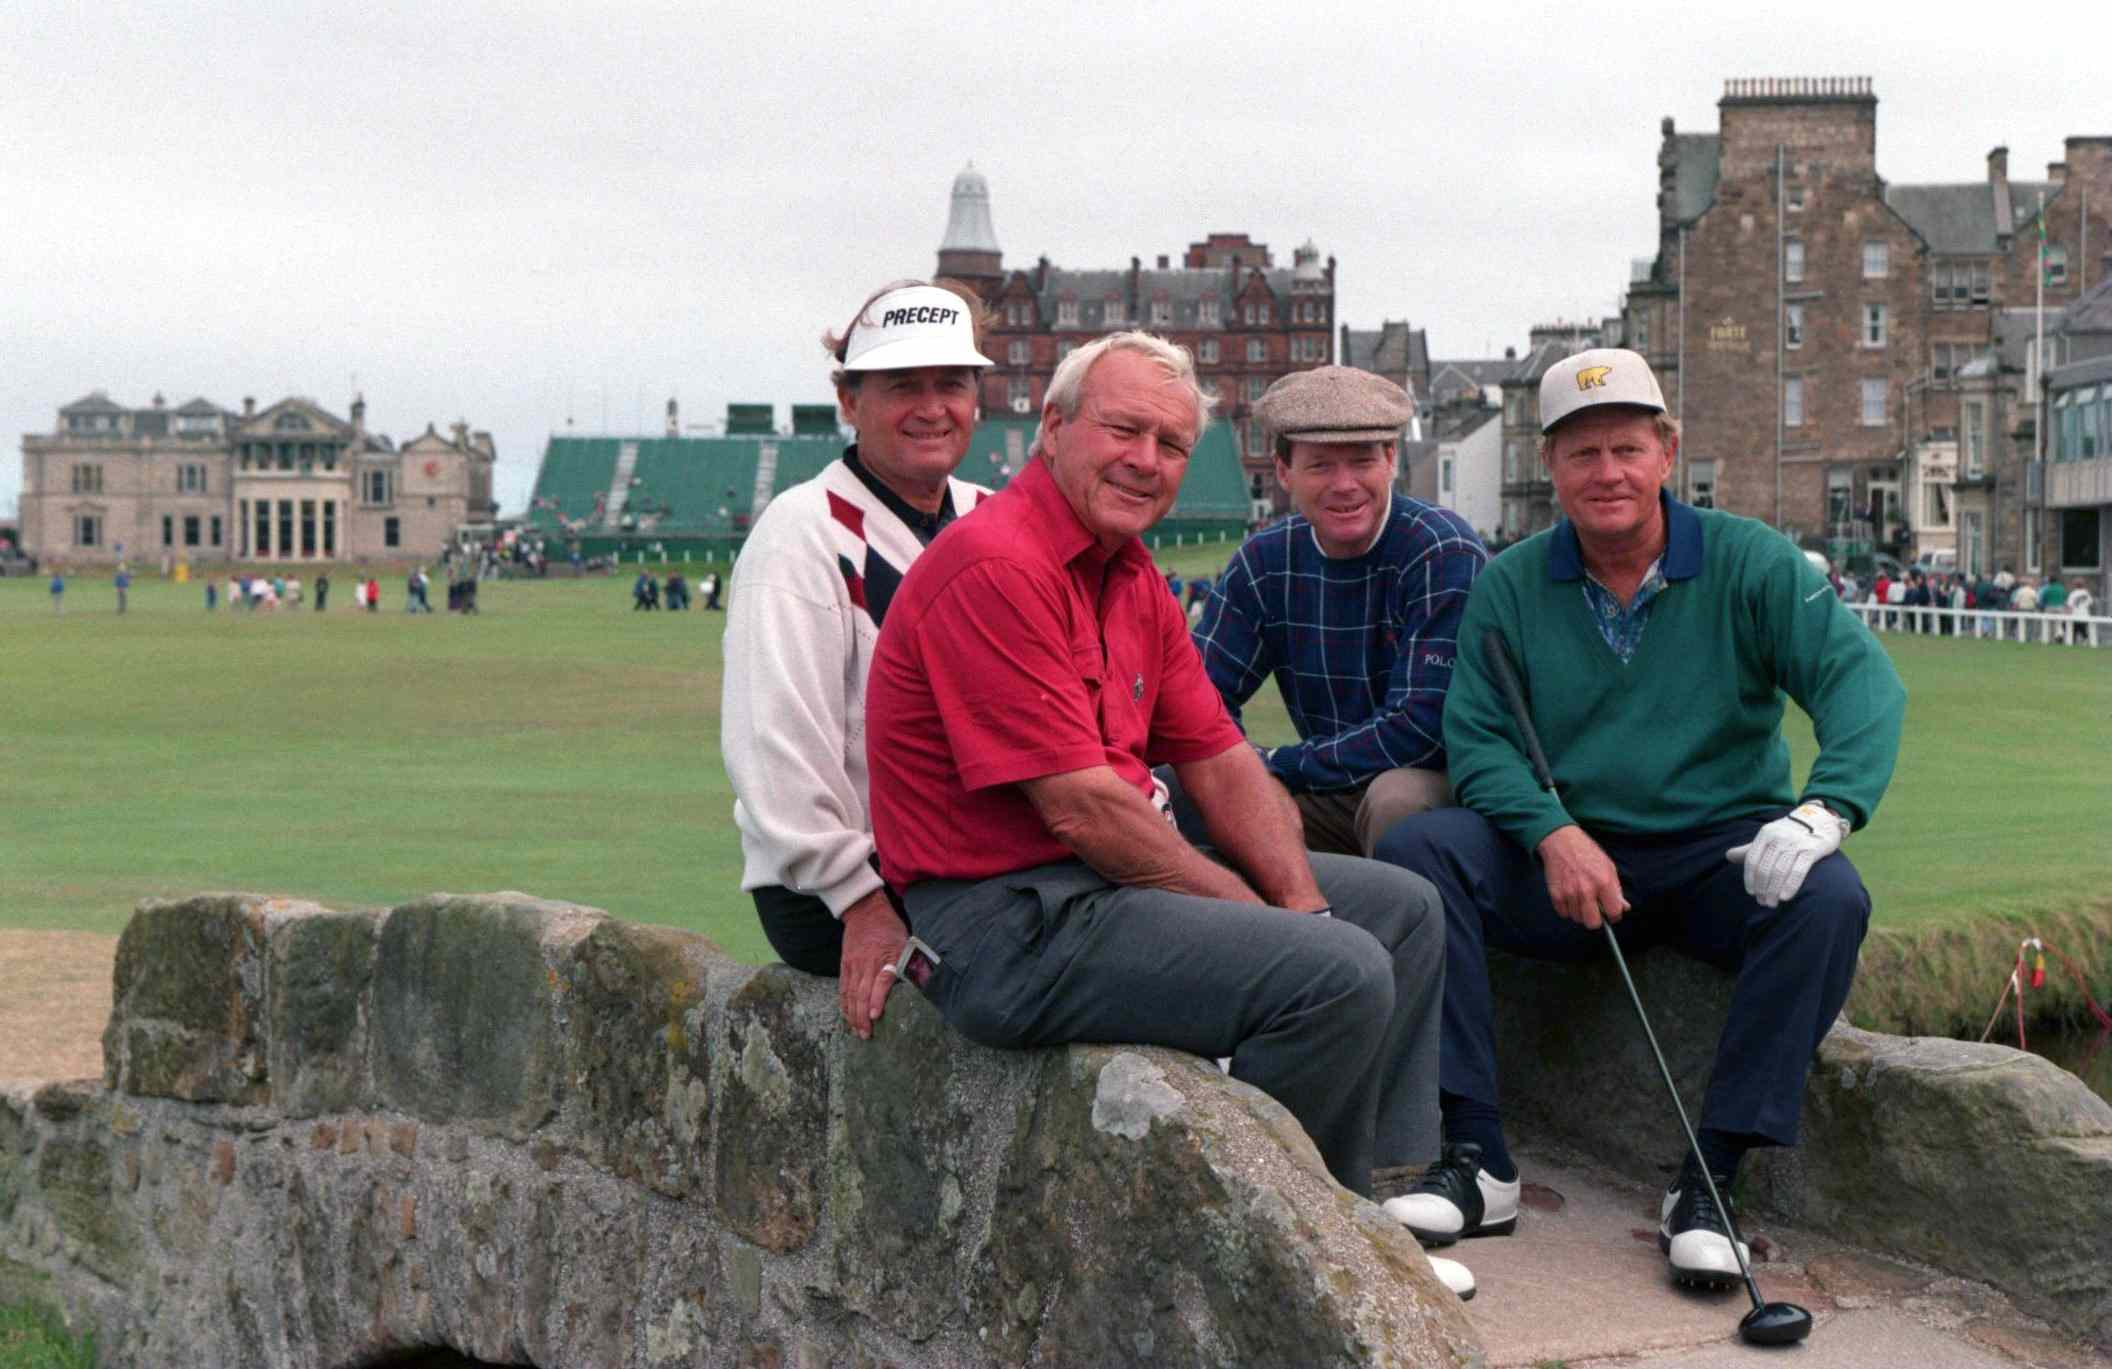 Four winners of the US Open pose together during a British Open practice round in 1995.